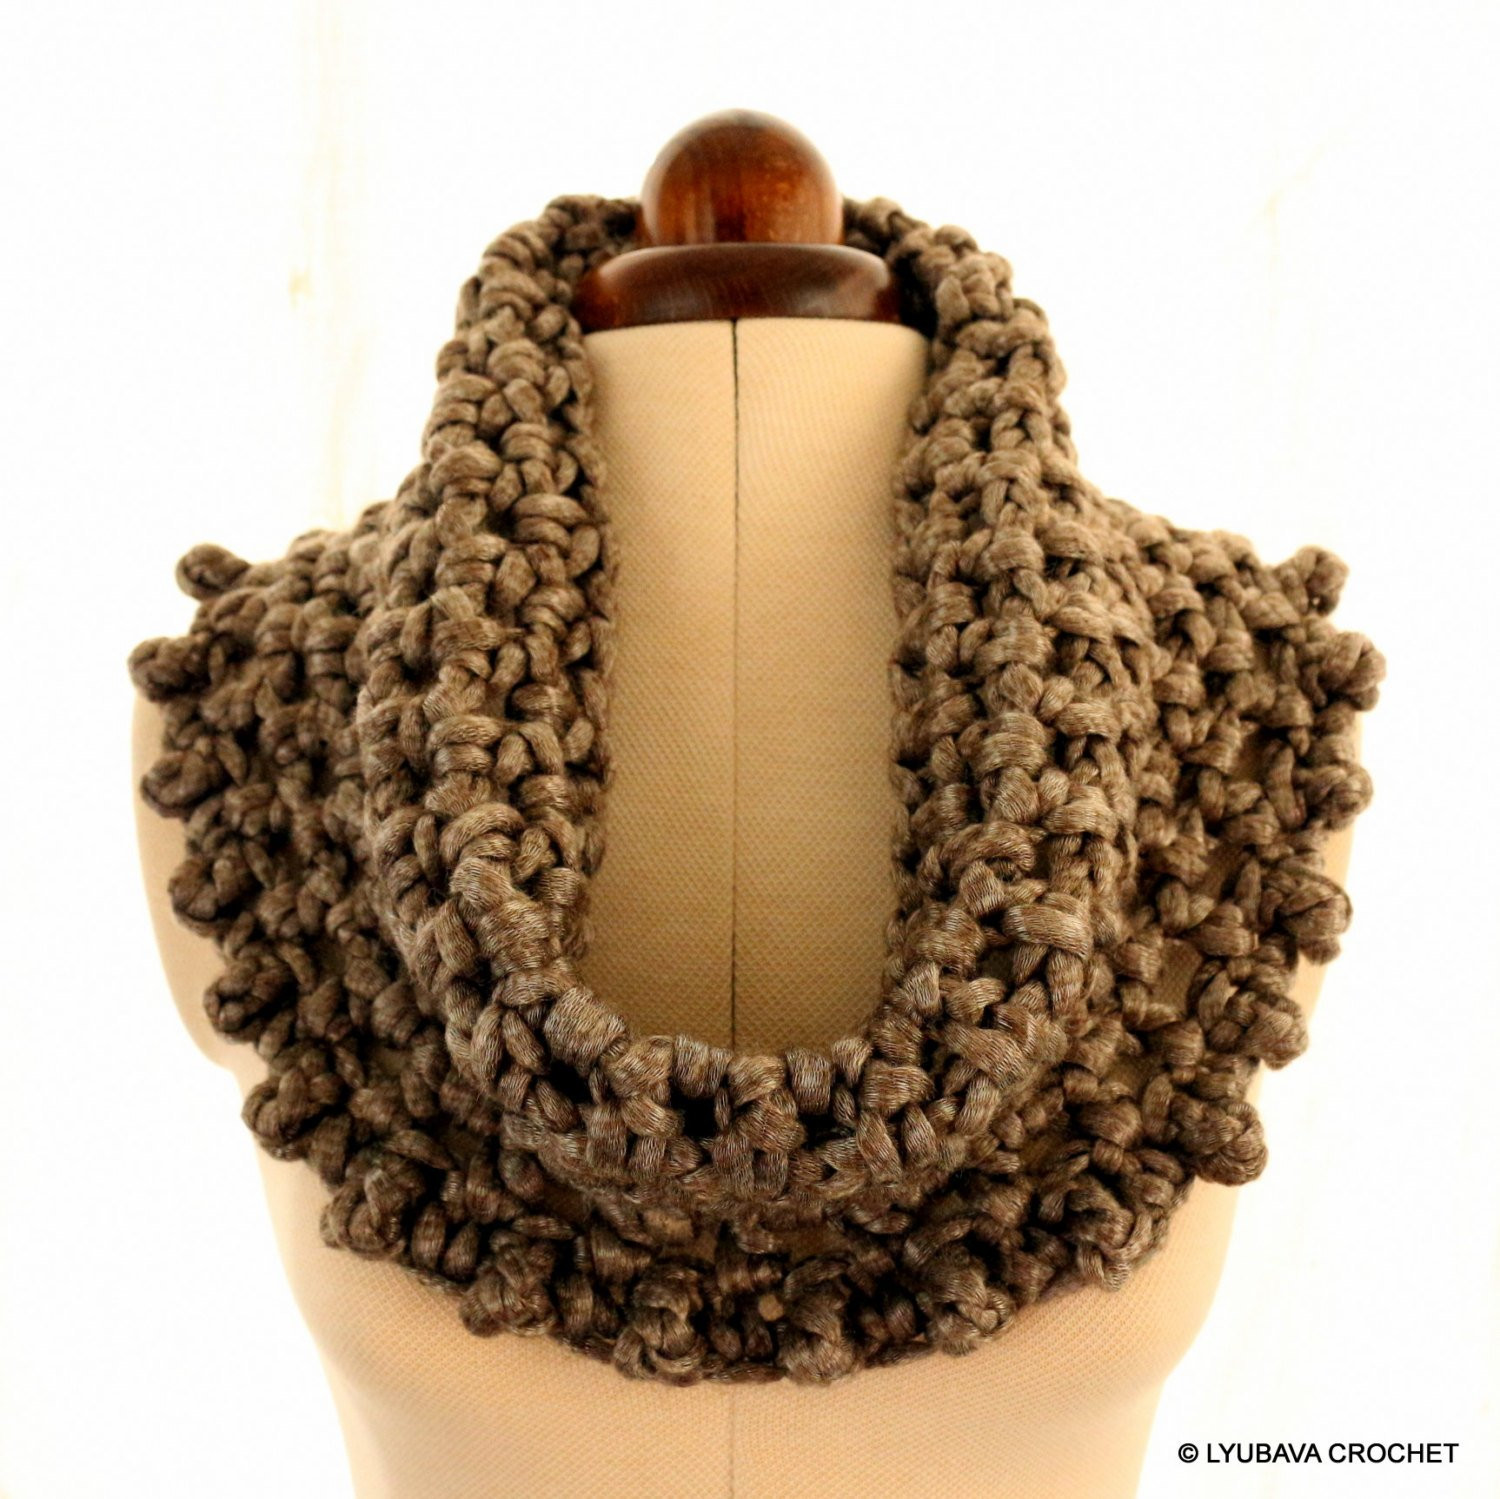 Best Of Crochet Cowl Pattern Chunky Scarf Cowl Metallic Gray Circle Chunky Scarf Pattern Of Marvelous 49 Photos Chunky Scarf Pattern